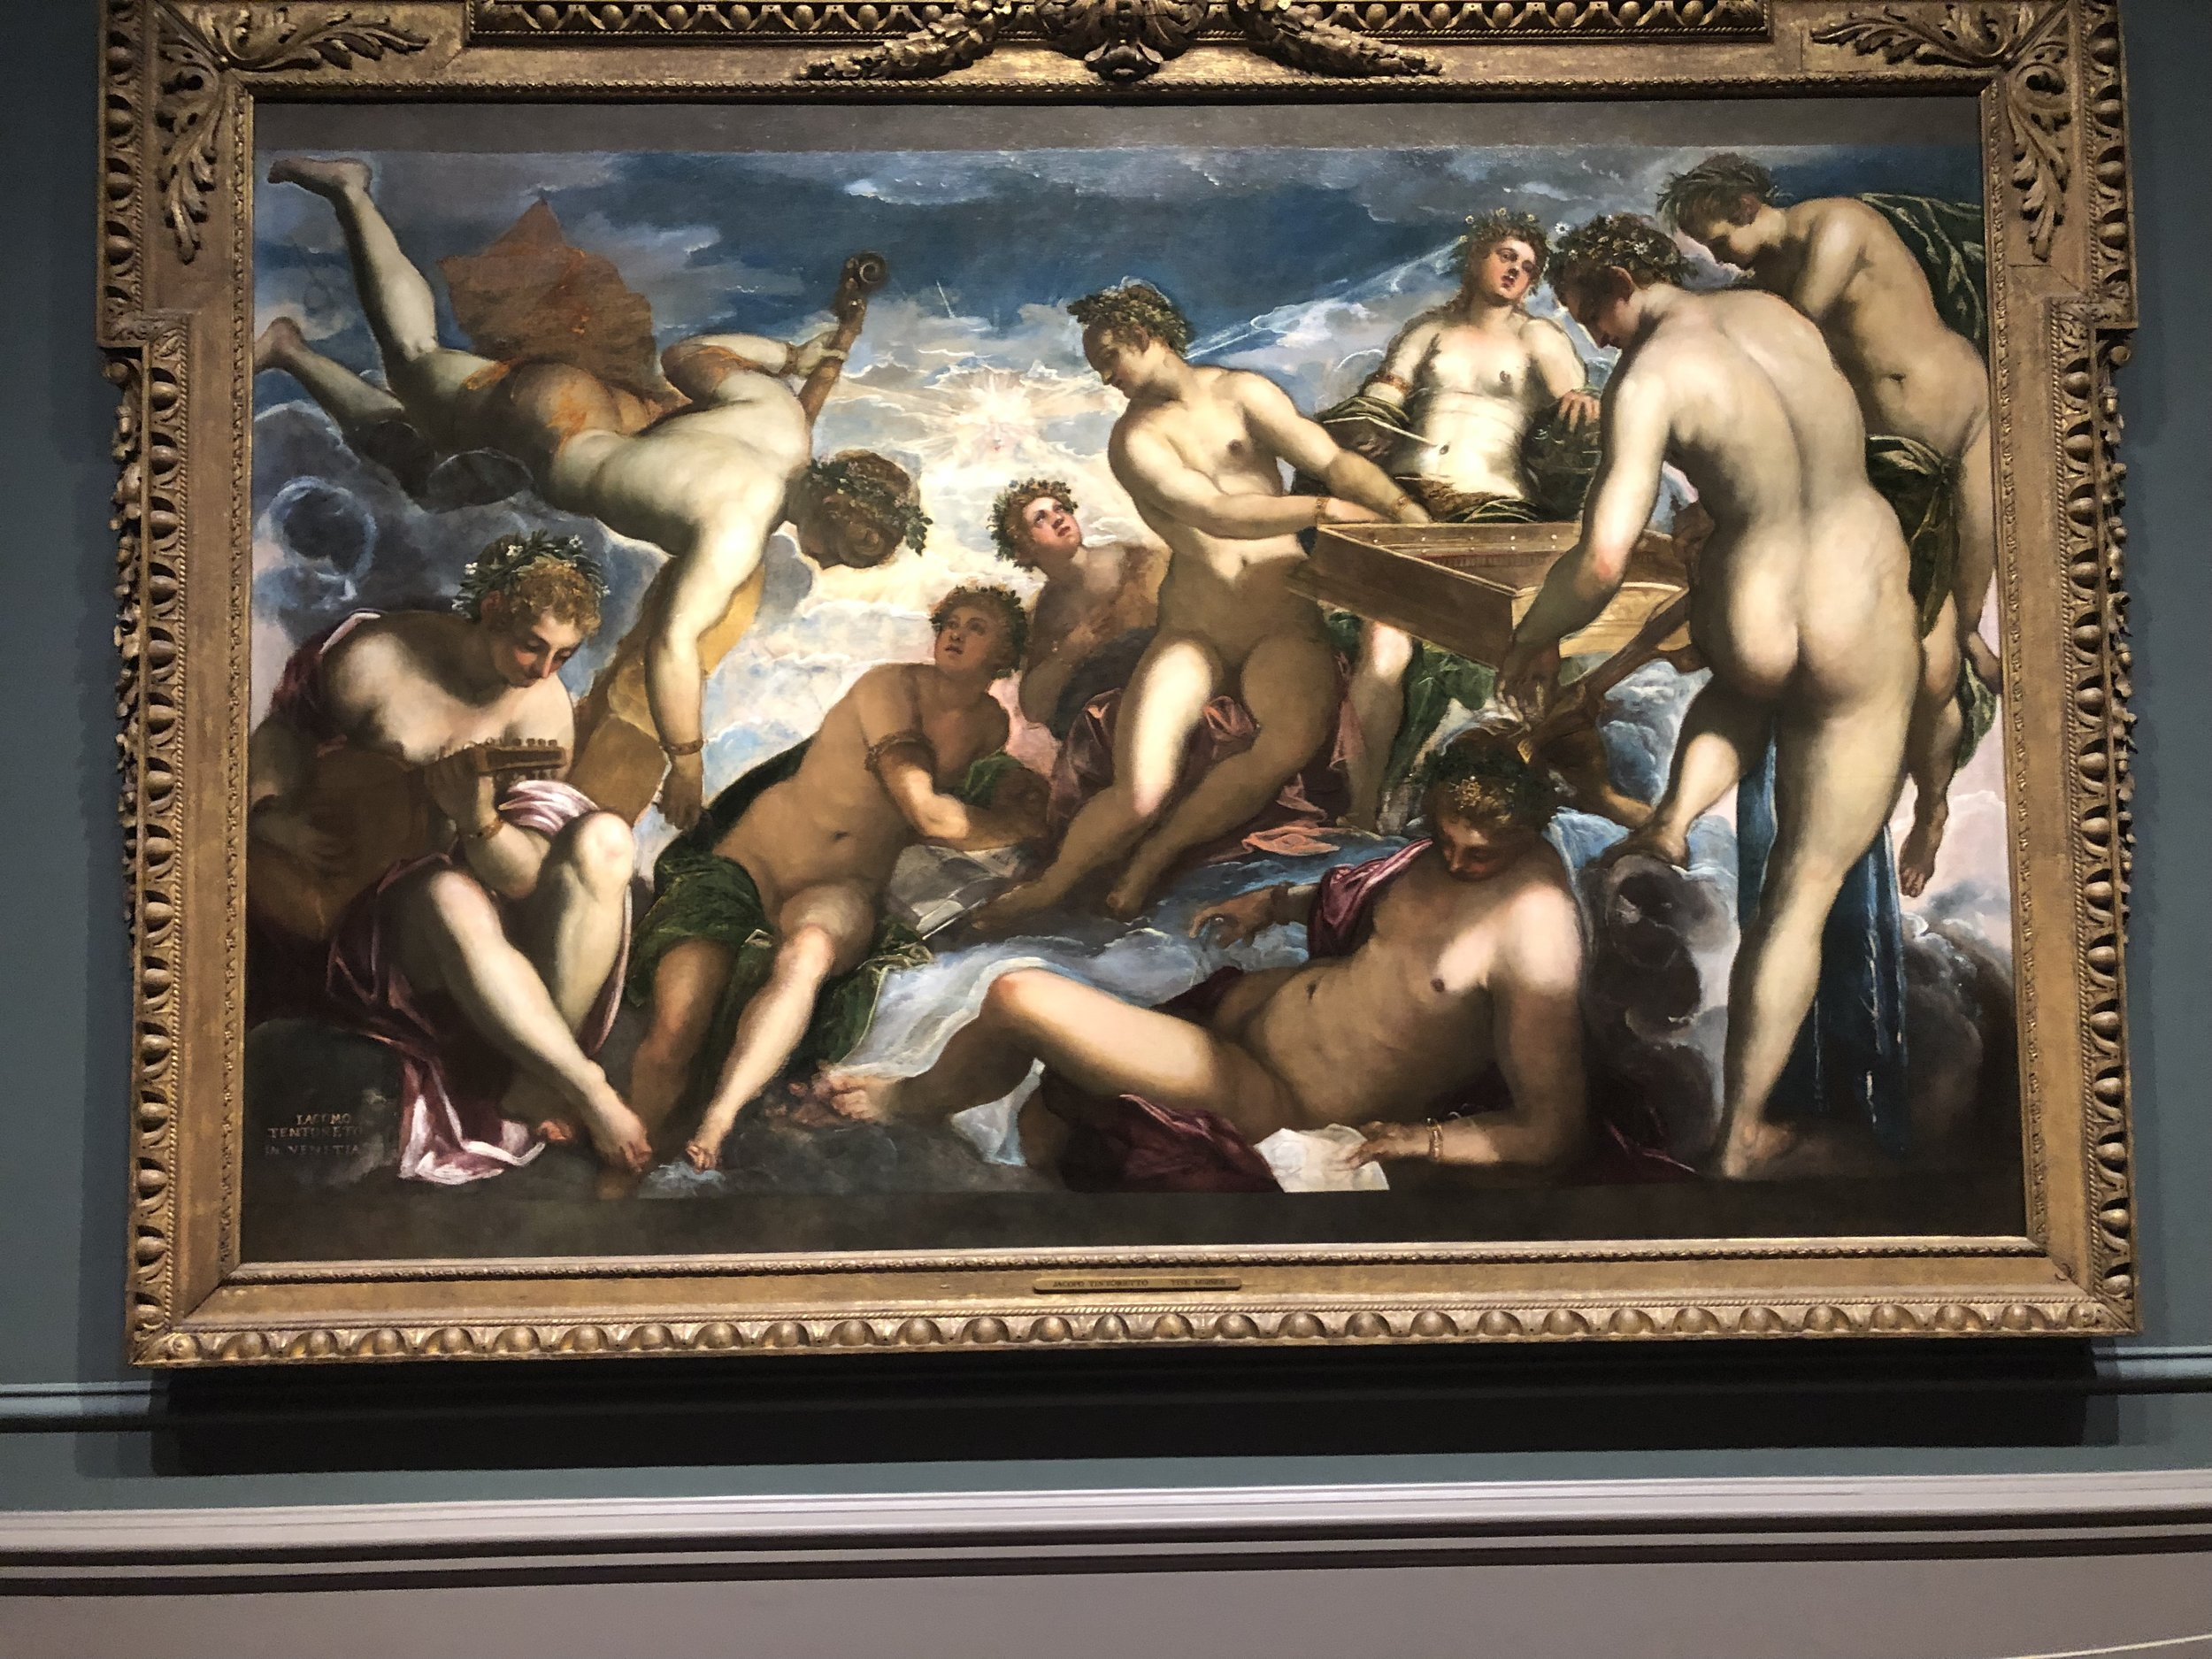 The Nine Muses, Tintoretto, The Royal Collection, London, now on view at the National Gallery of Art